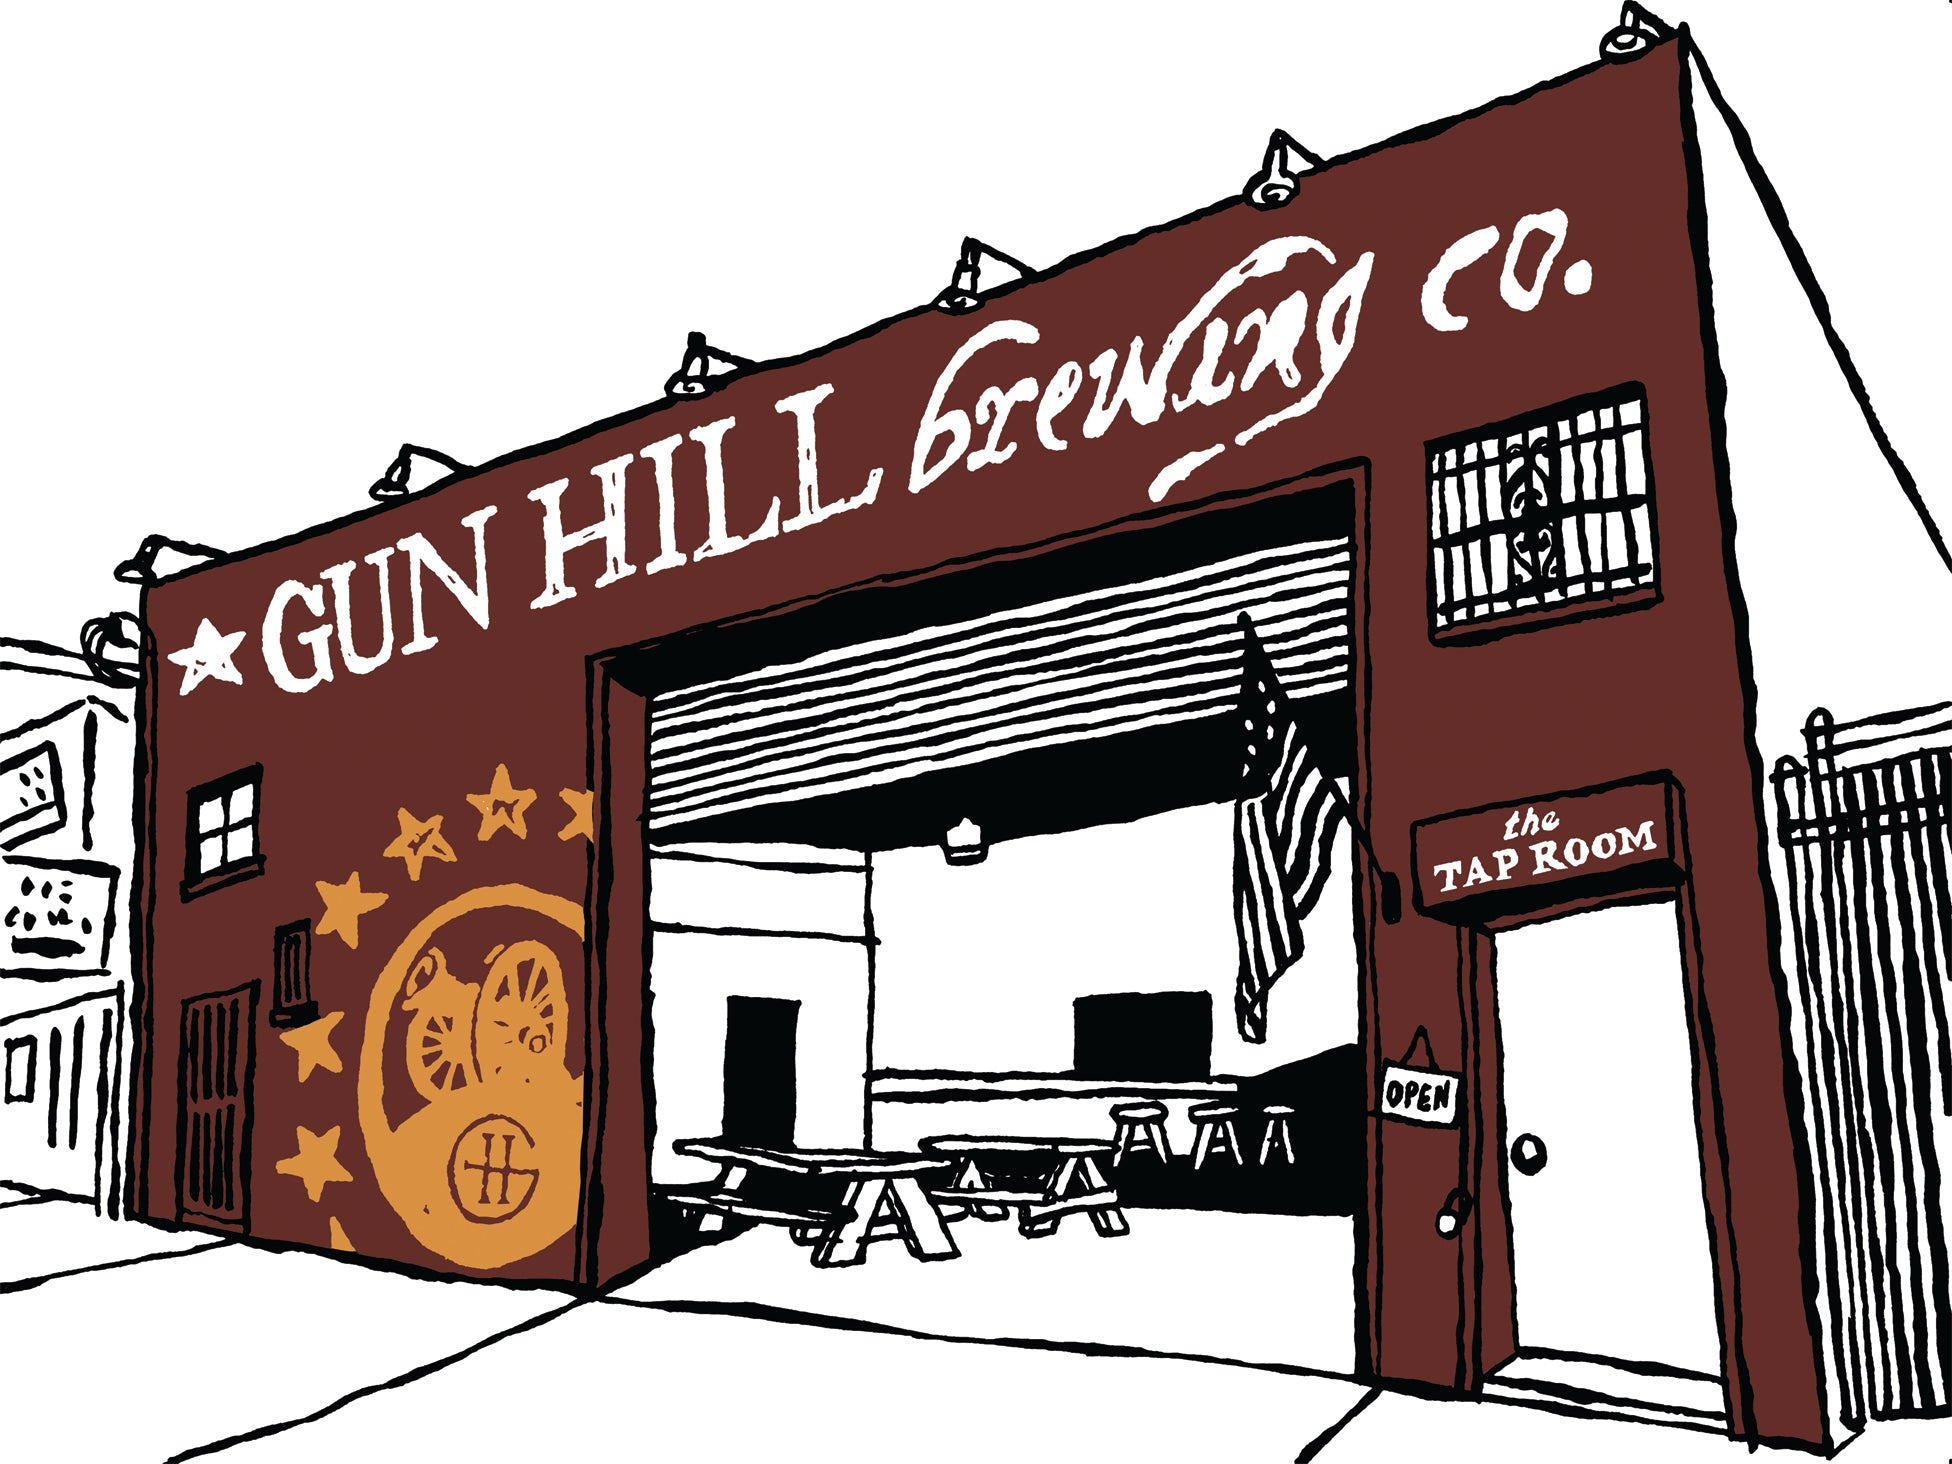 gun hill brewing co. bronx nyc art by john tebeau